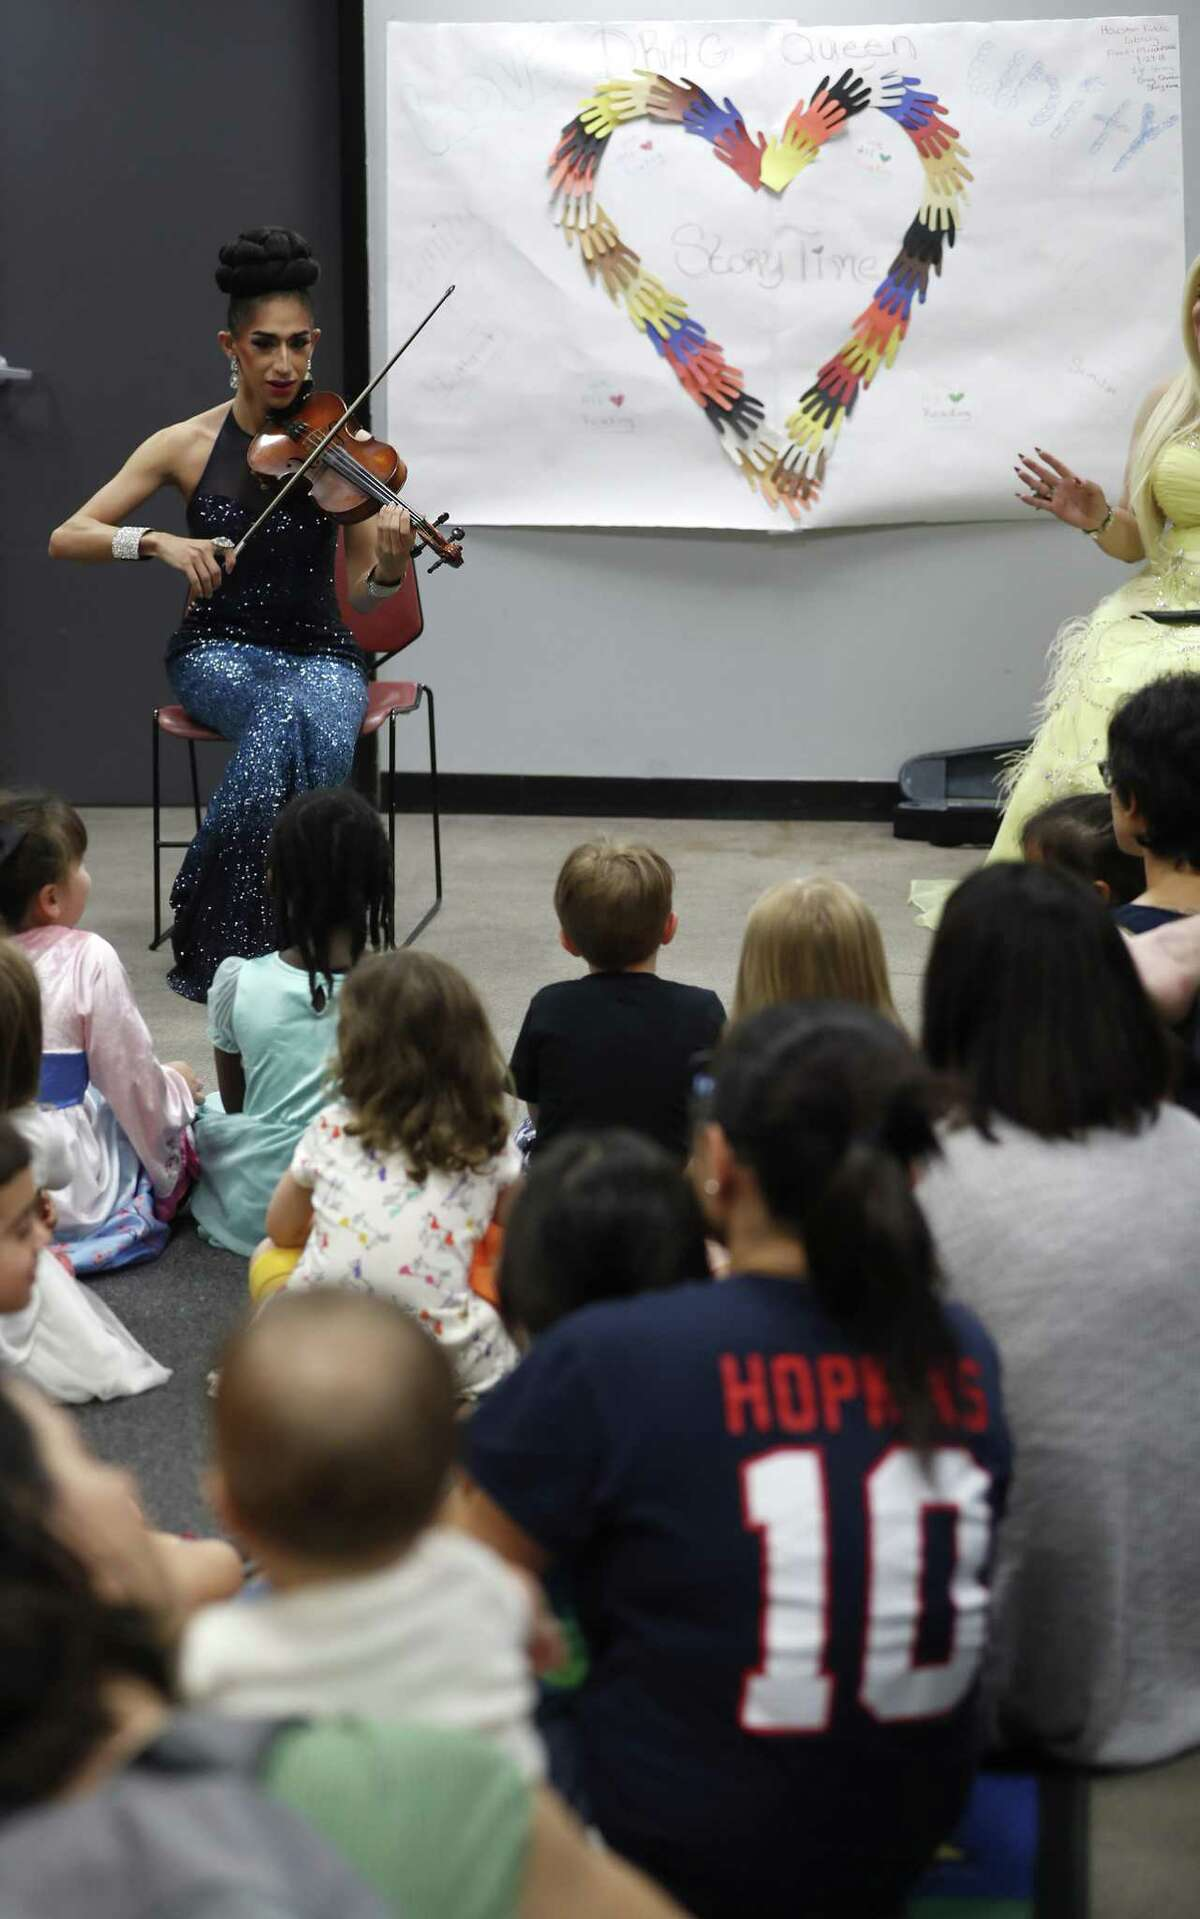 Angelina plays the violin for adults and children during the monthly Drag Queen Story Time at Freed-Montrose Neighborhood Library, Saturday, September 29, 2018, in Houston. Saturday marked the one-year anniversary of the story hour, which happens on the last Saturday of every month.